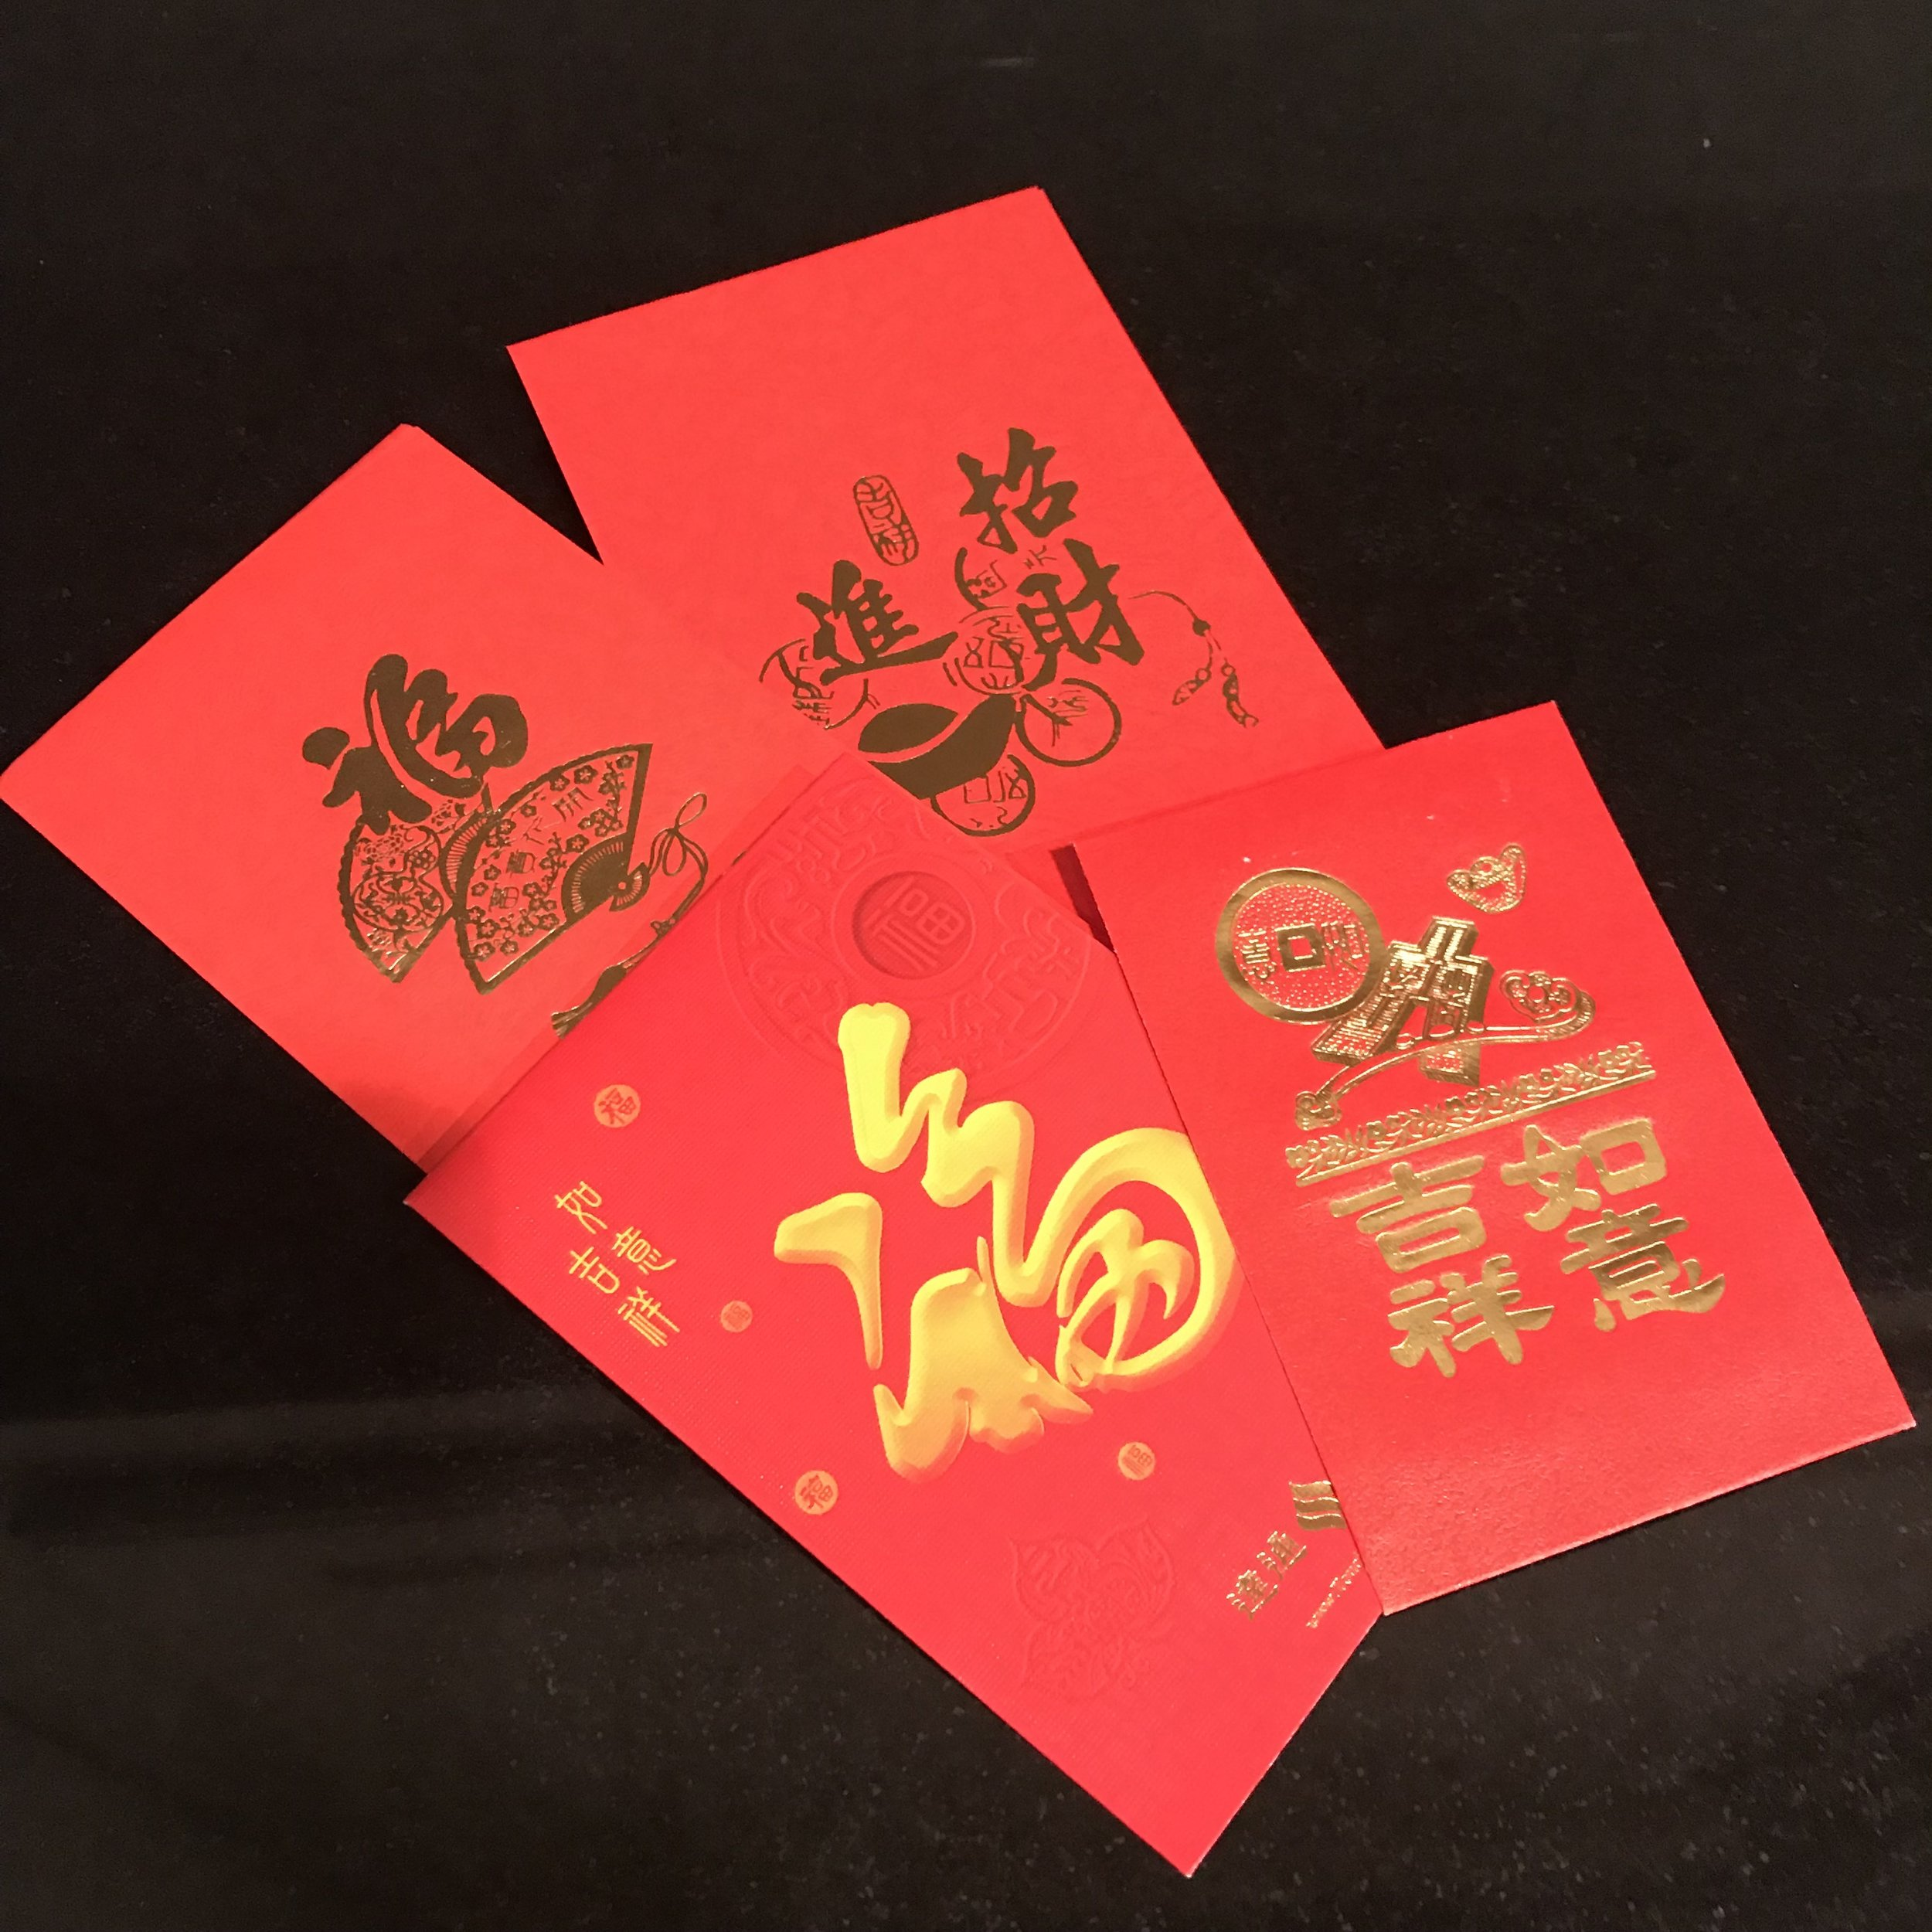 Some examples of Red Envelopes or Lucky Money